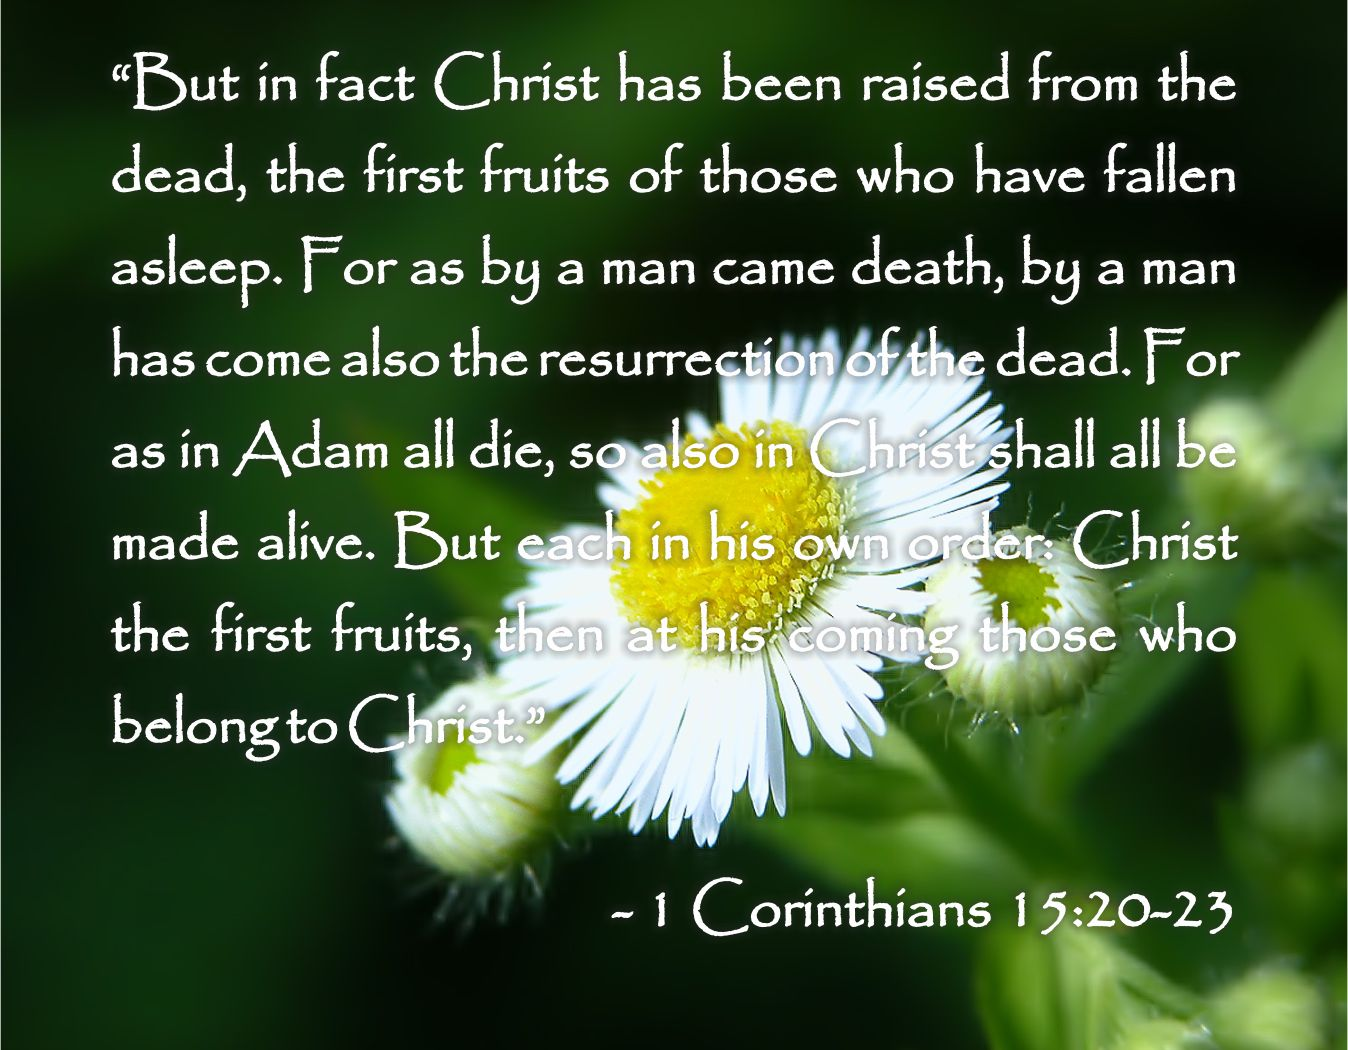 Death Quotes: Tagalog Prayers And Christian Quotes: Bible Quotes About